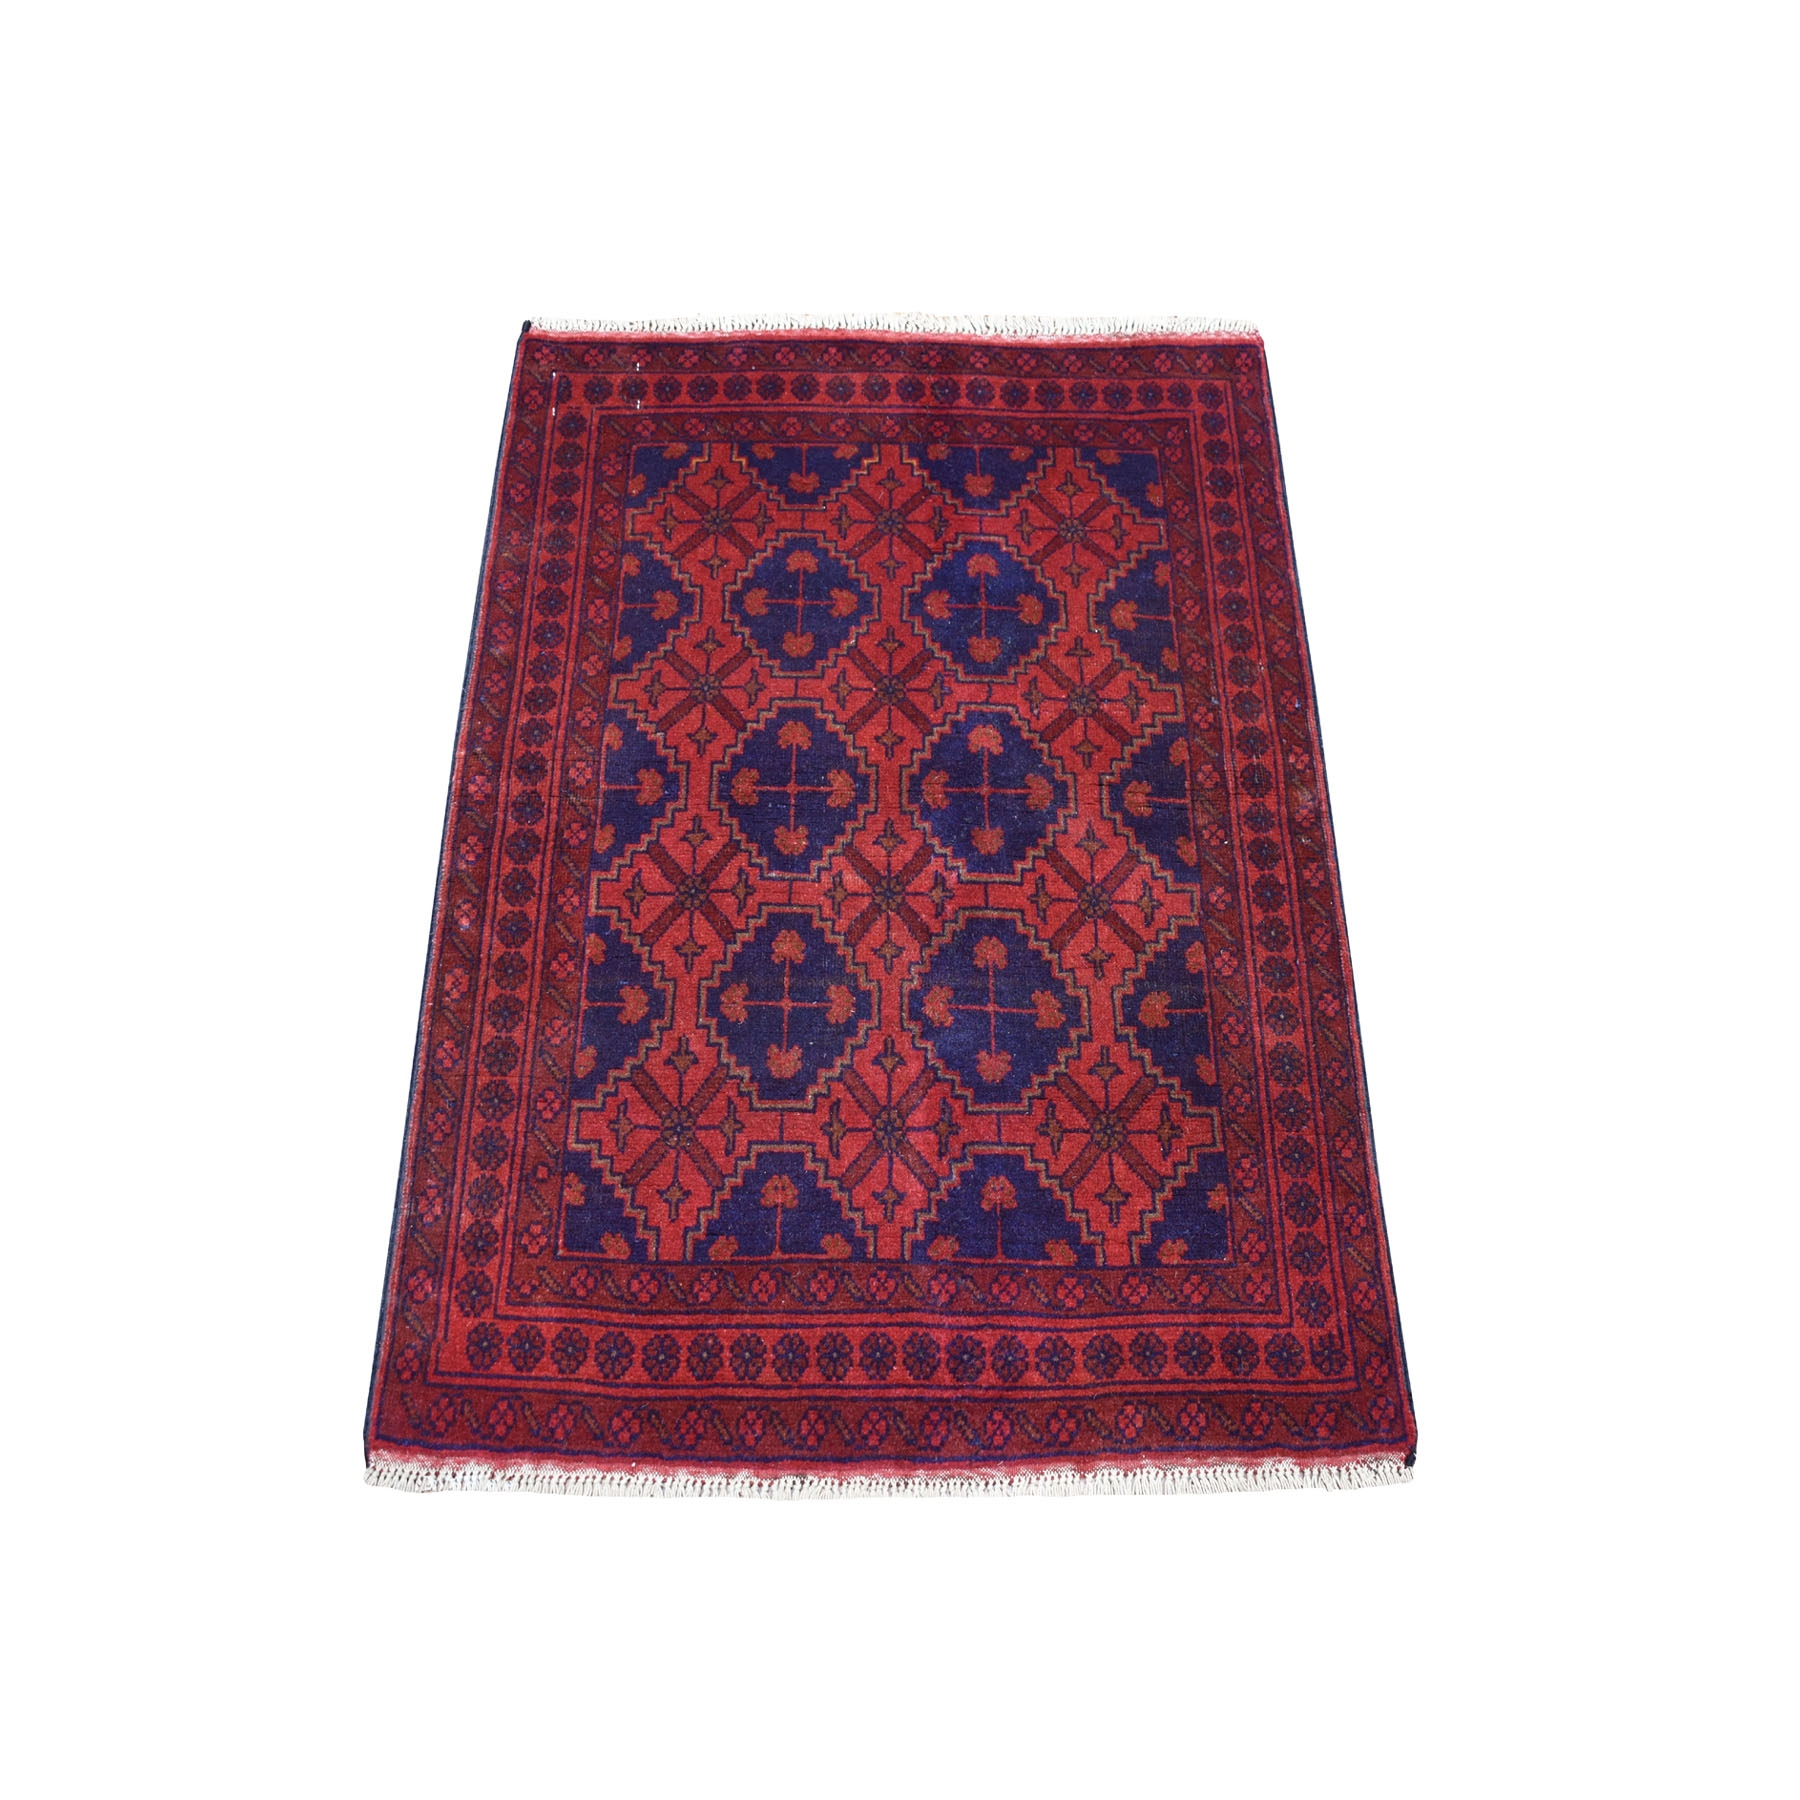 "2'8""x3'9"" Deep and Saturated Red Geometric Afghan Andkhoy Pure Wool Hand Knotted Oriental Rug"